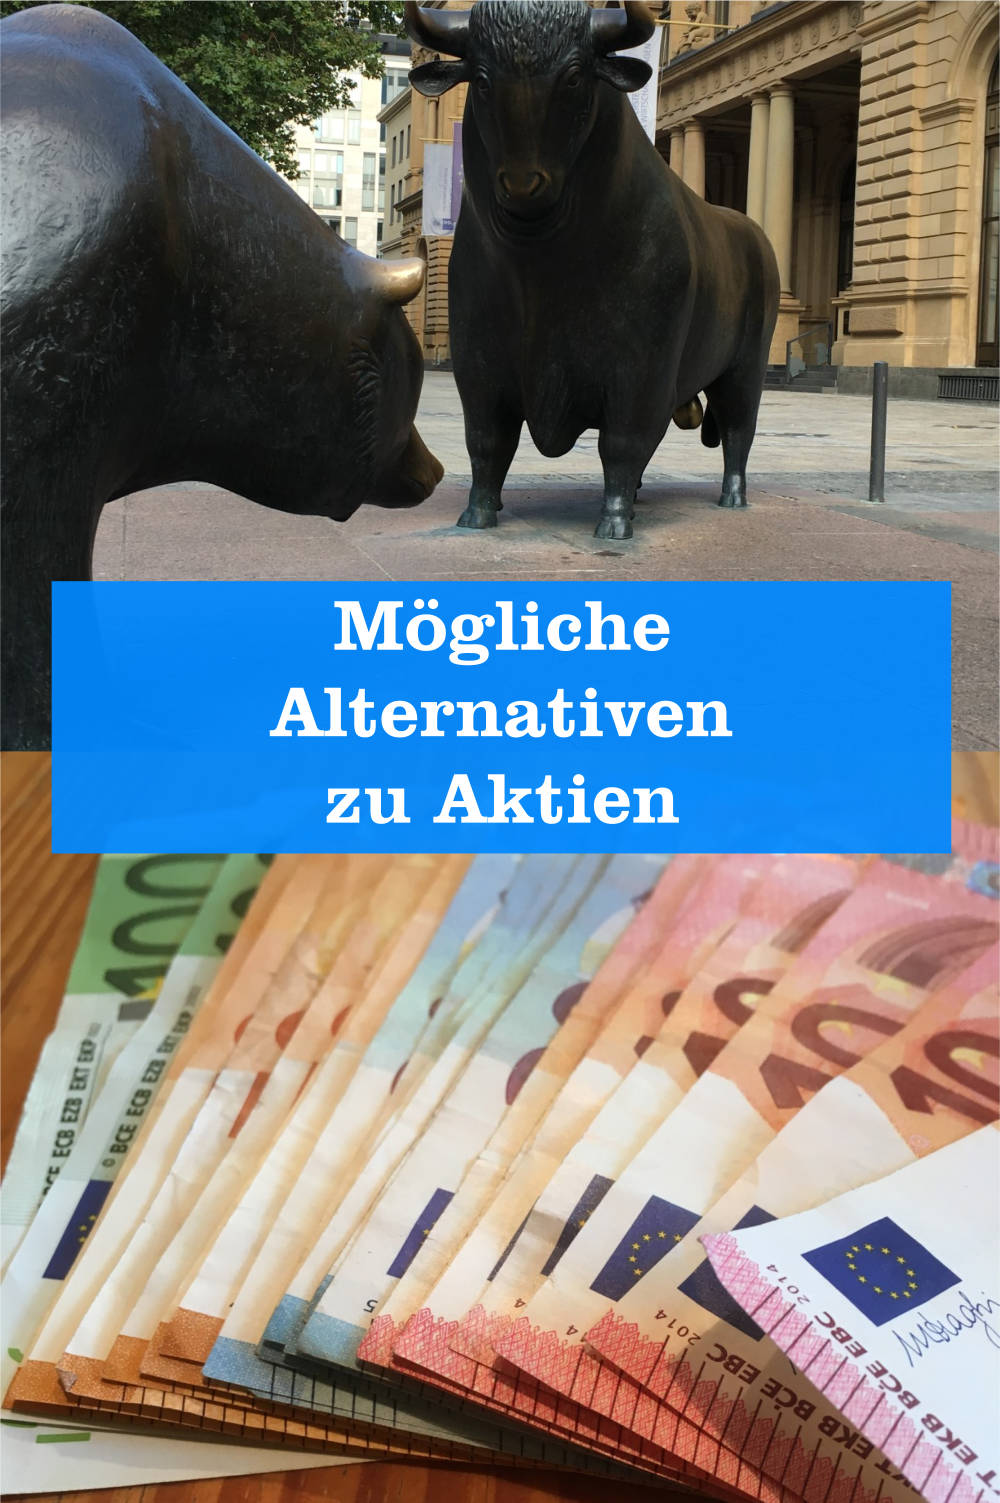 Alternativen zu Aktien